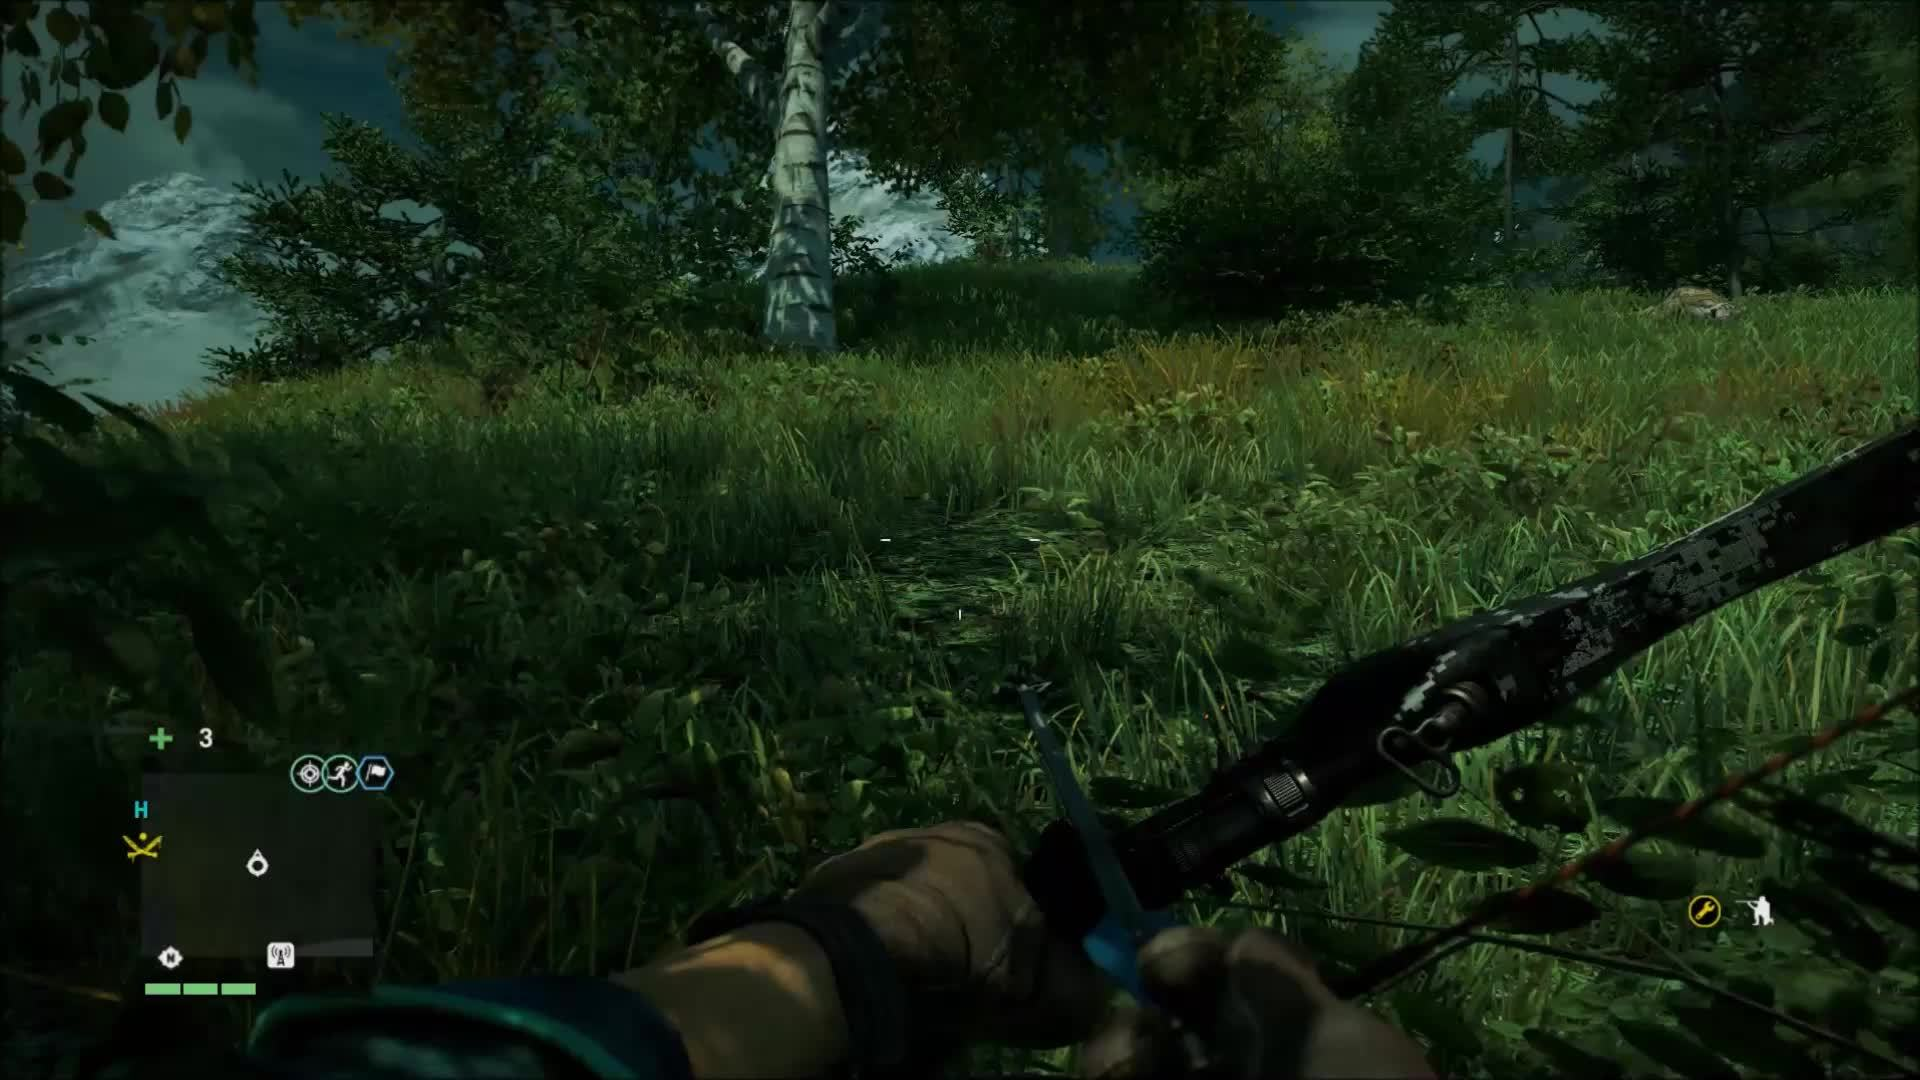 60fpsgaminggifs, [Far Cry 4] Using bait GIFs